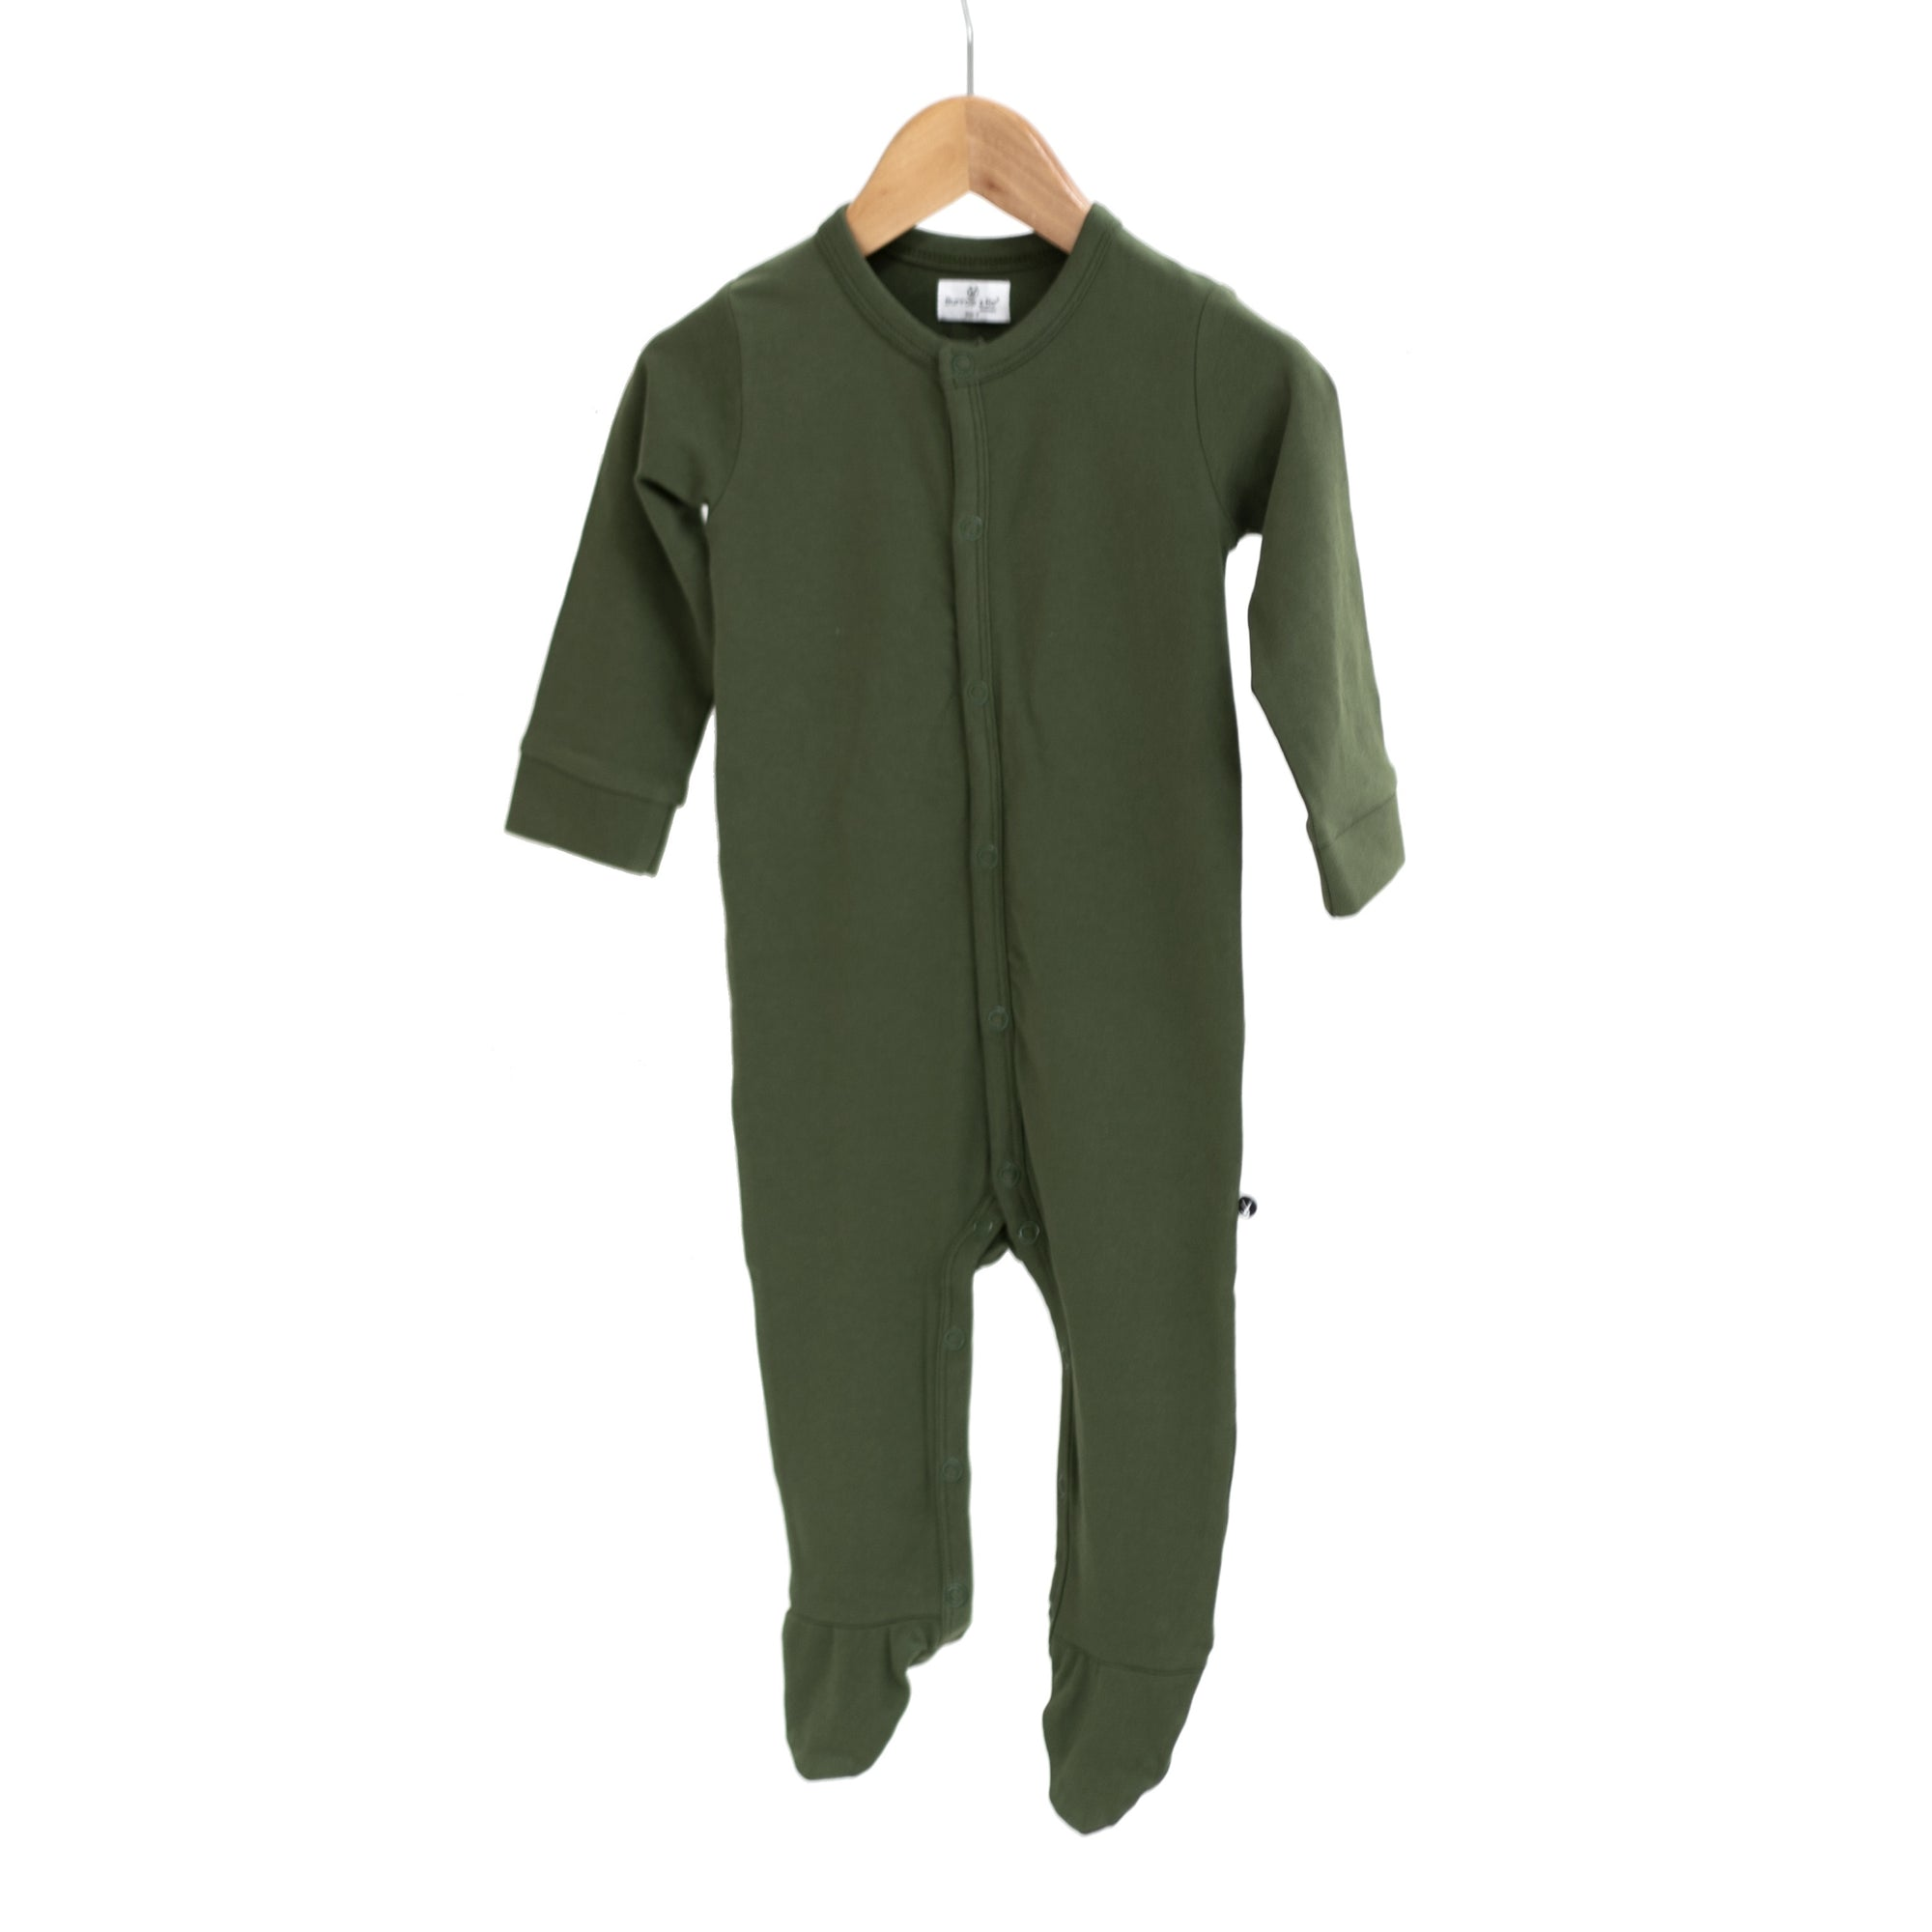 Burrow & Be Pine Sleep Suit